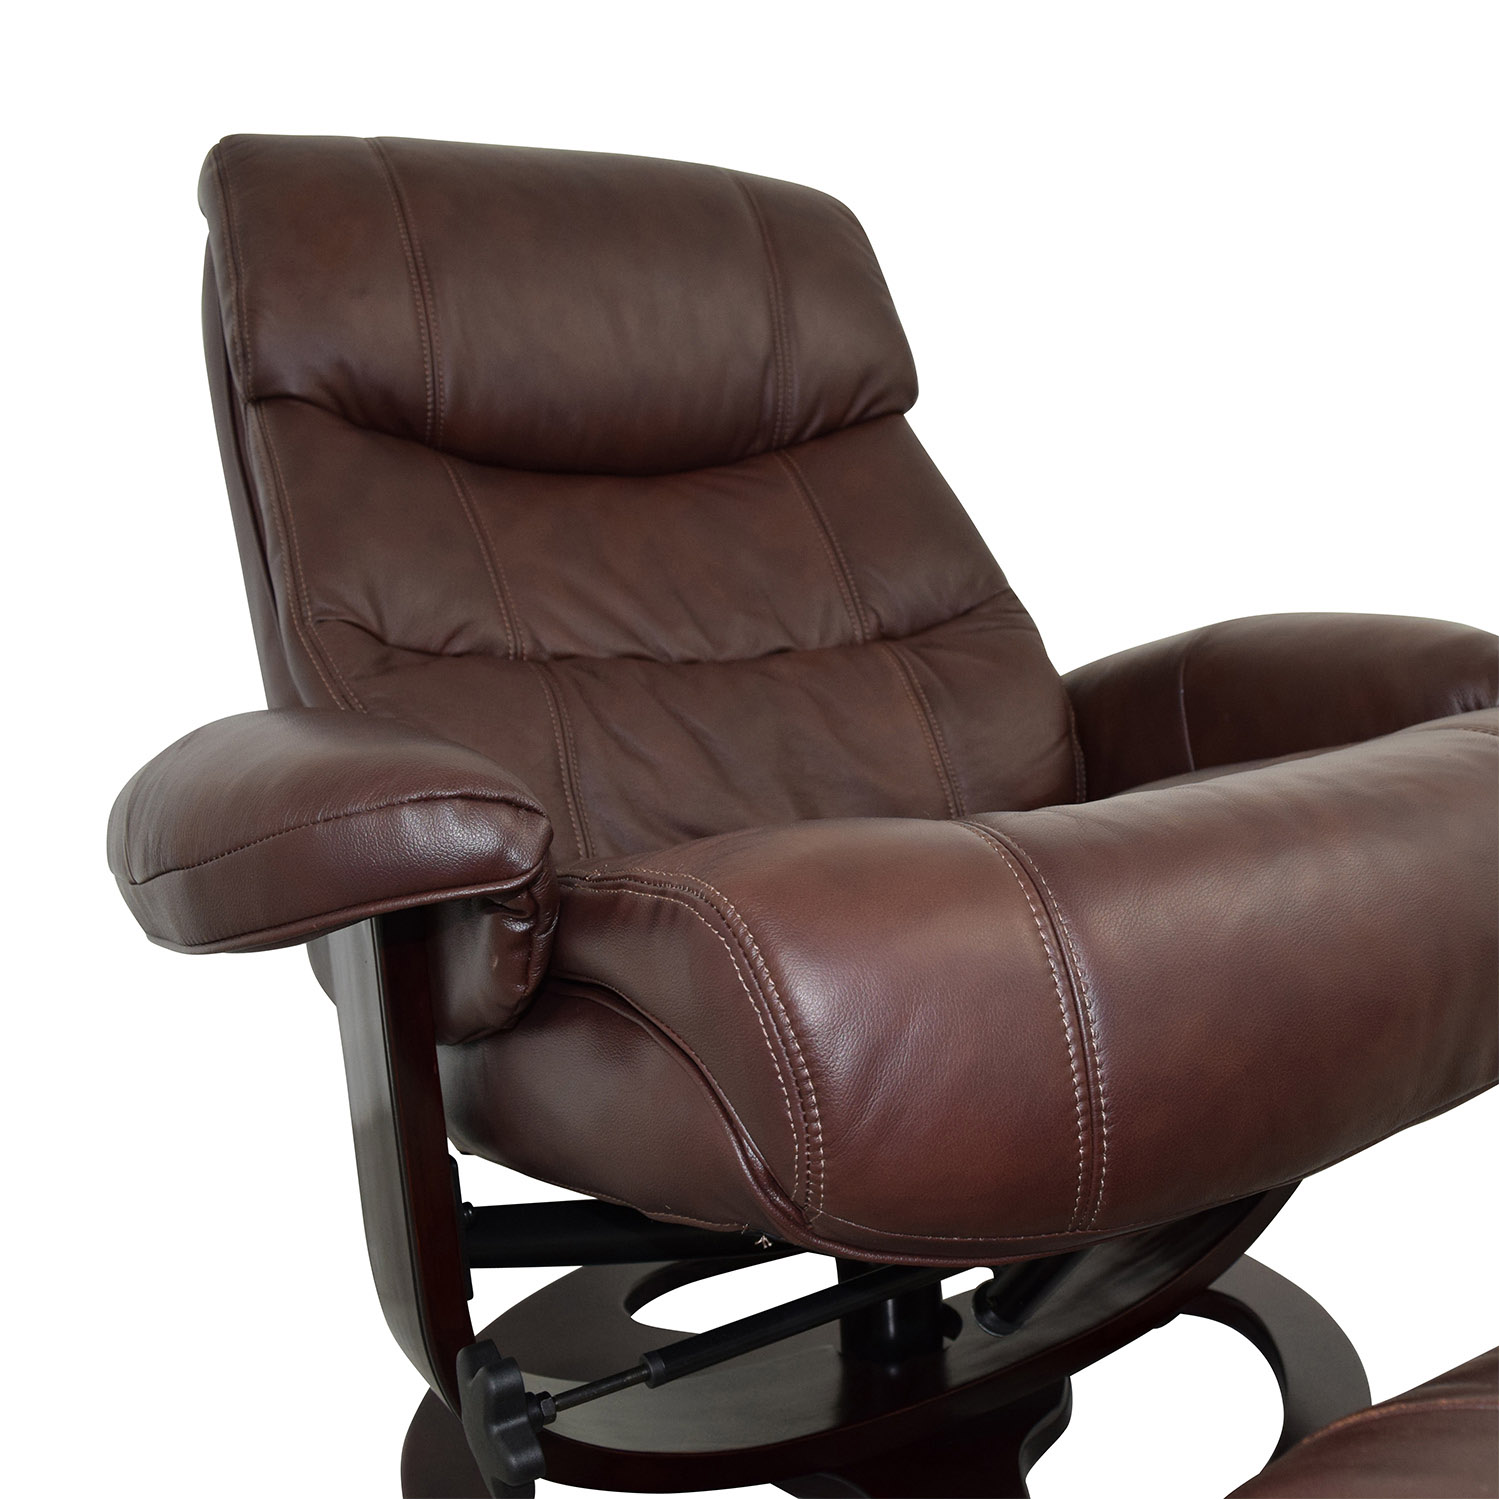 Macys Aby Brown Leather Recliner Chair & Ottoman Macys